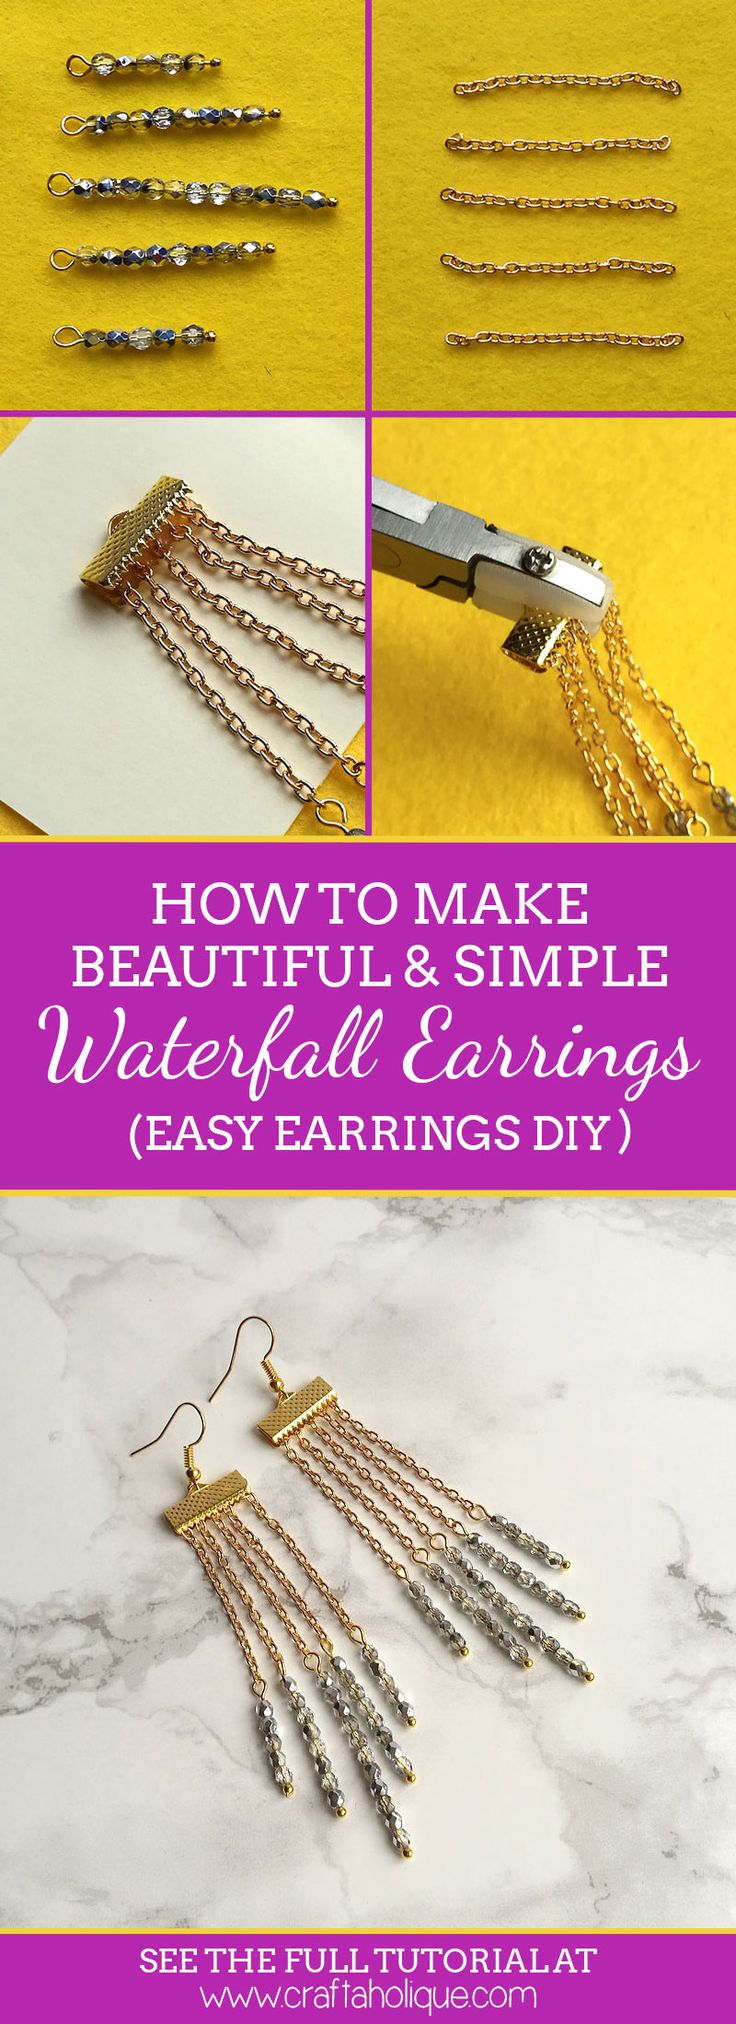 how to make handmade jewellery easy